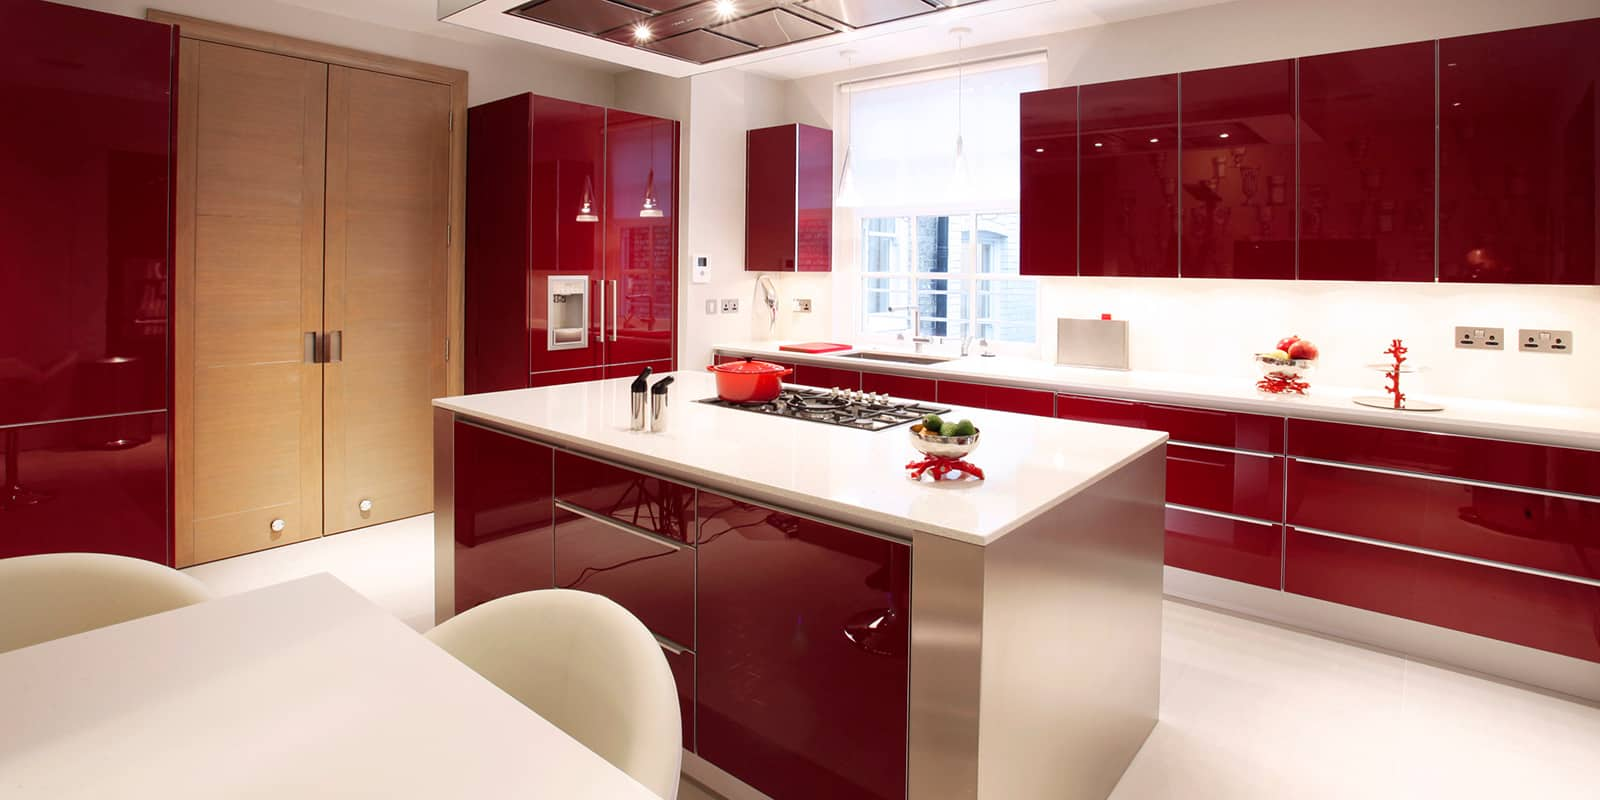 Large modern kitchen with red cupboards